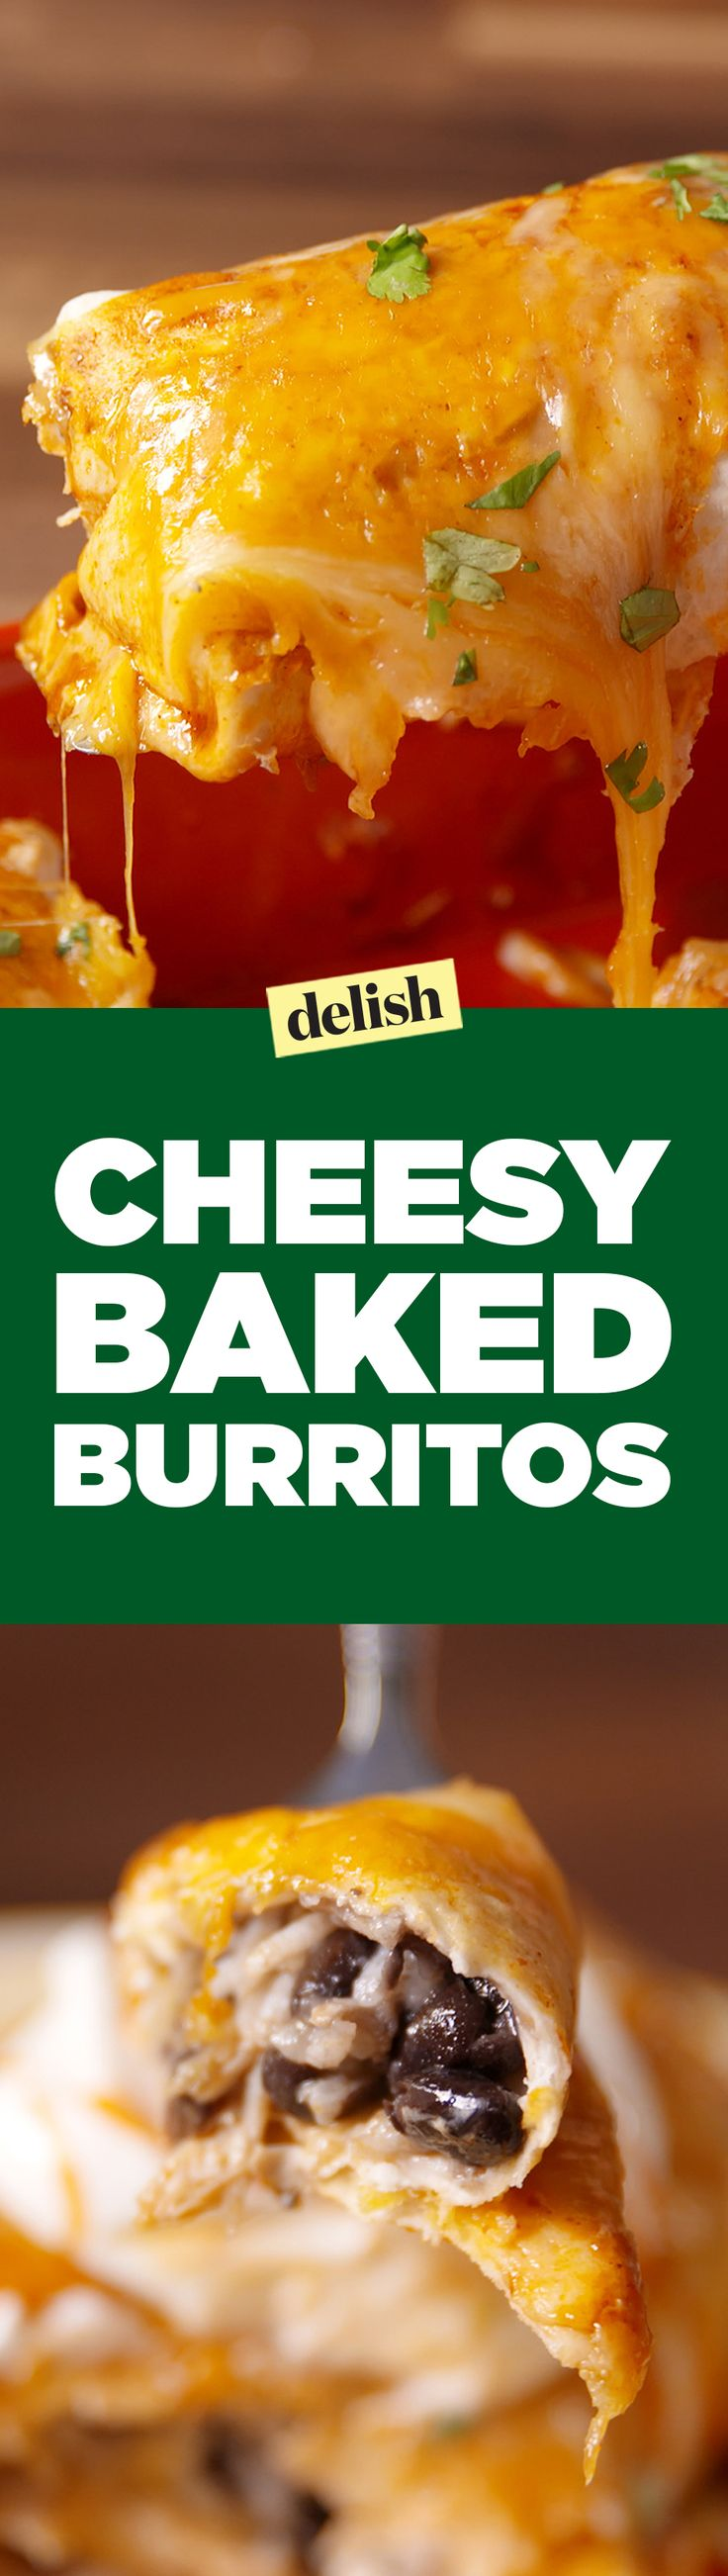 These cheese baked burritos put Chipotle to shame. Get the recipe on Delish.com.